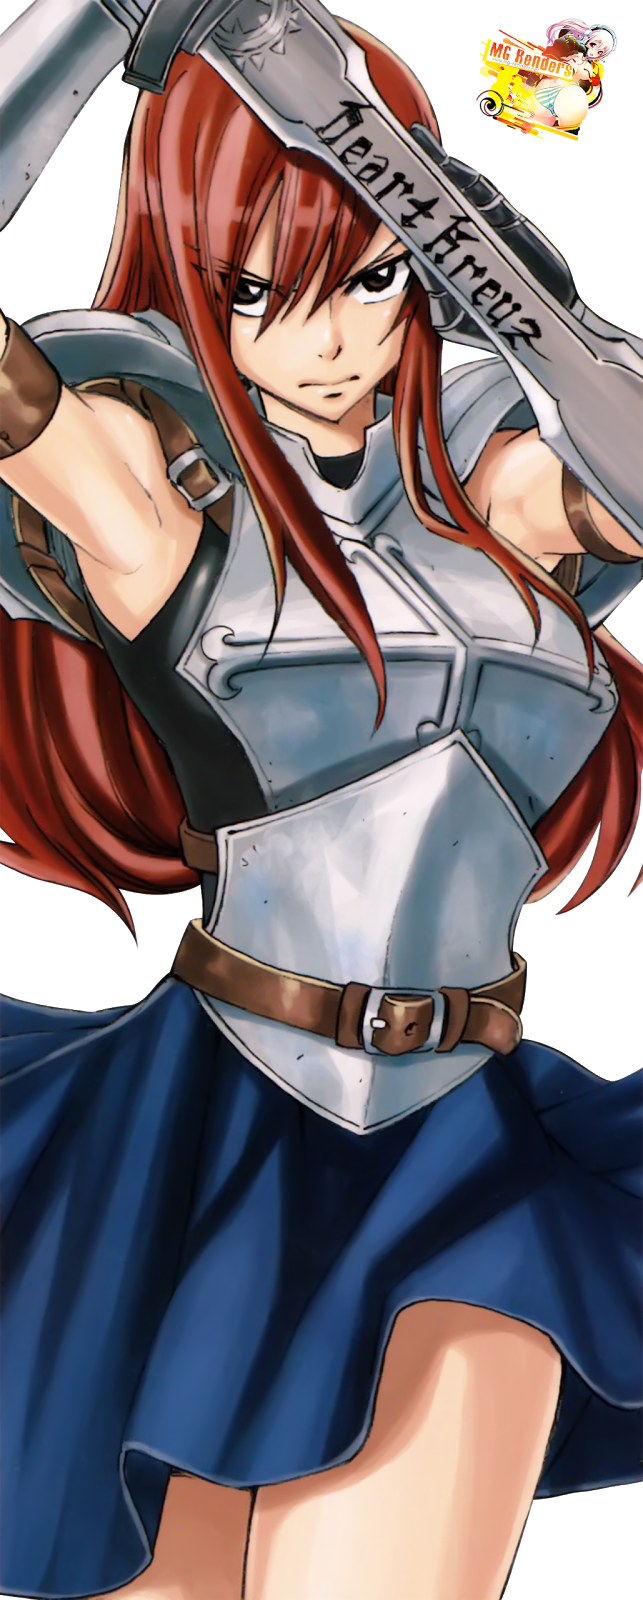 Tags: Anime, Render,  Erza Scarlet,  Fairy Tail,  PNG, Image, Picture